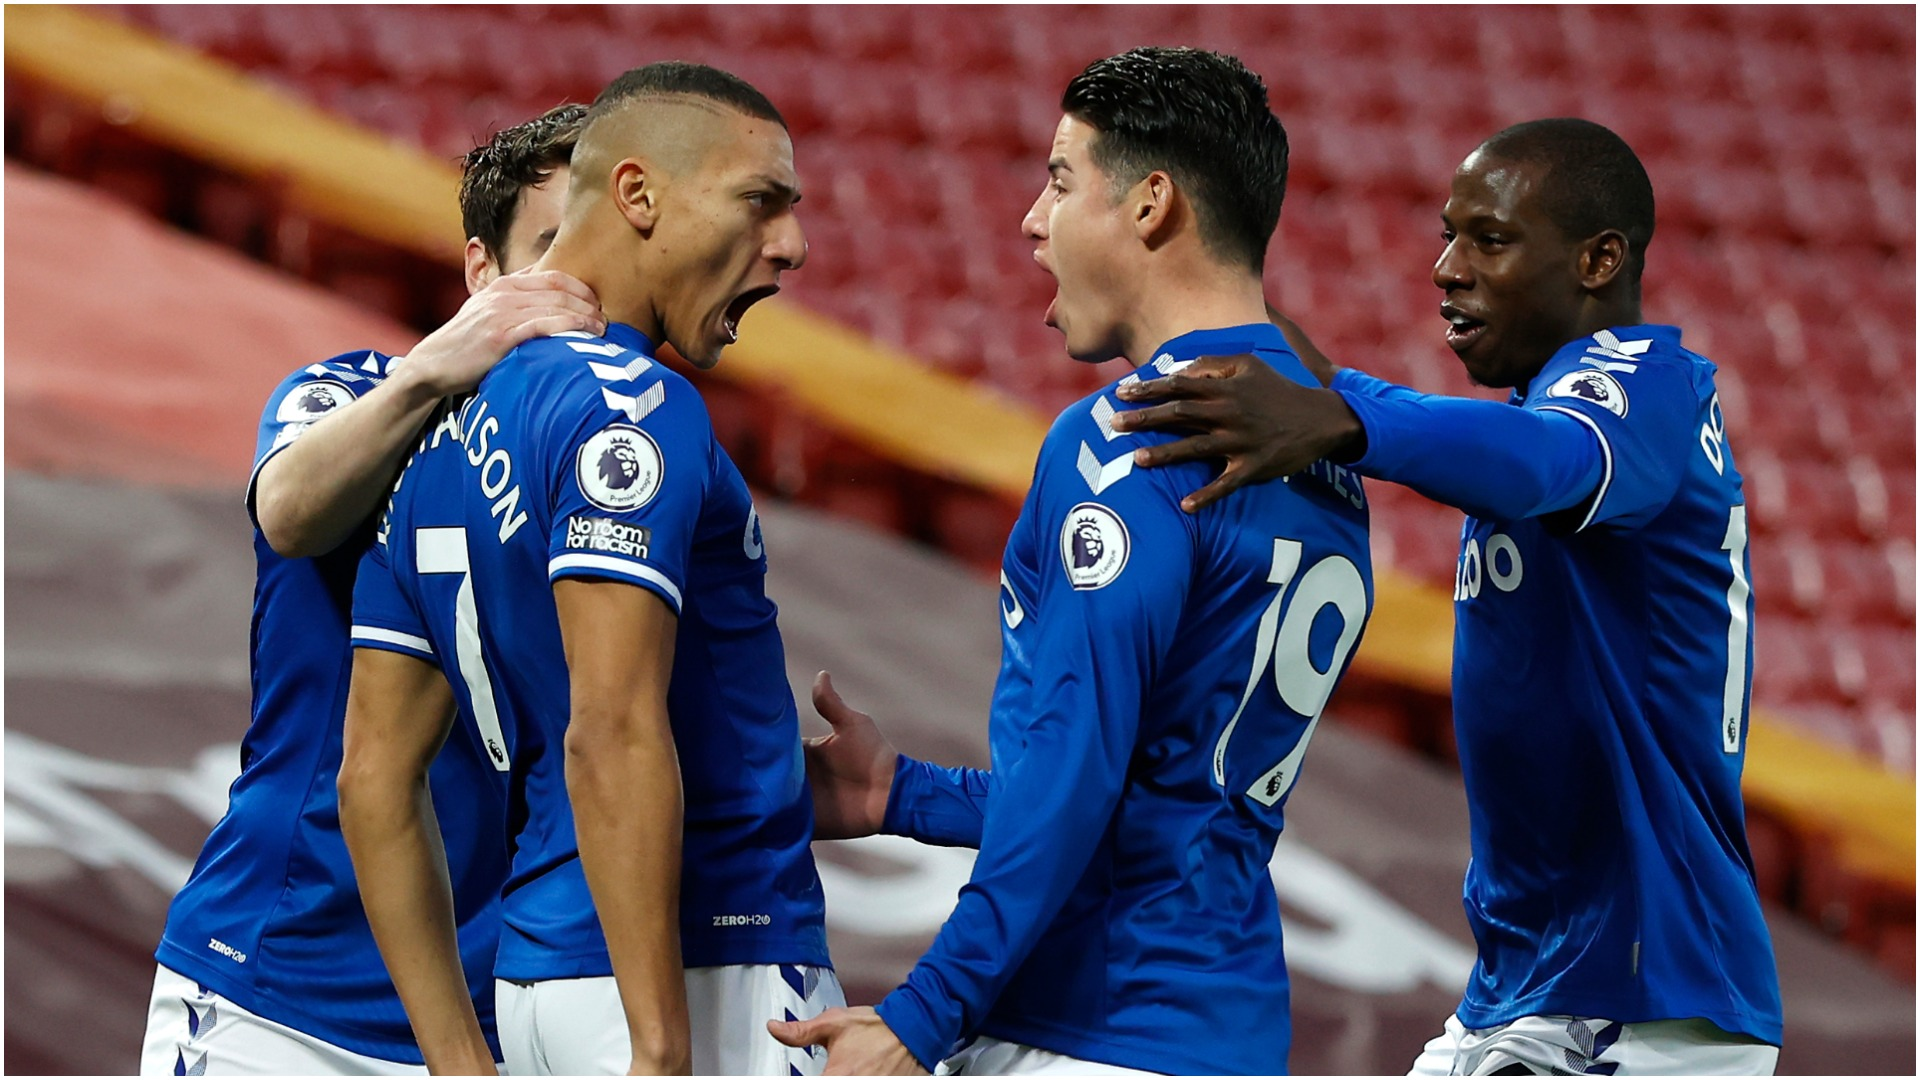 Liverpool 0-2 Everton: Reds slump continues as Toffees end Anfield misery